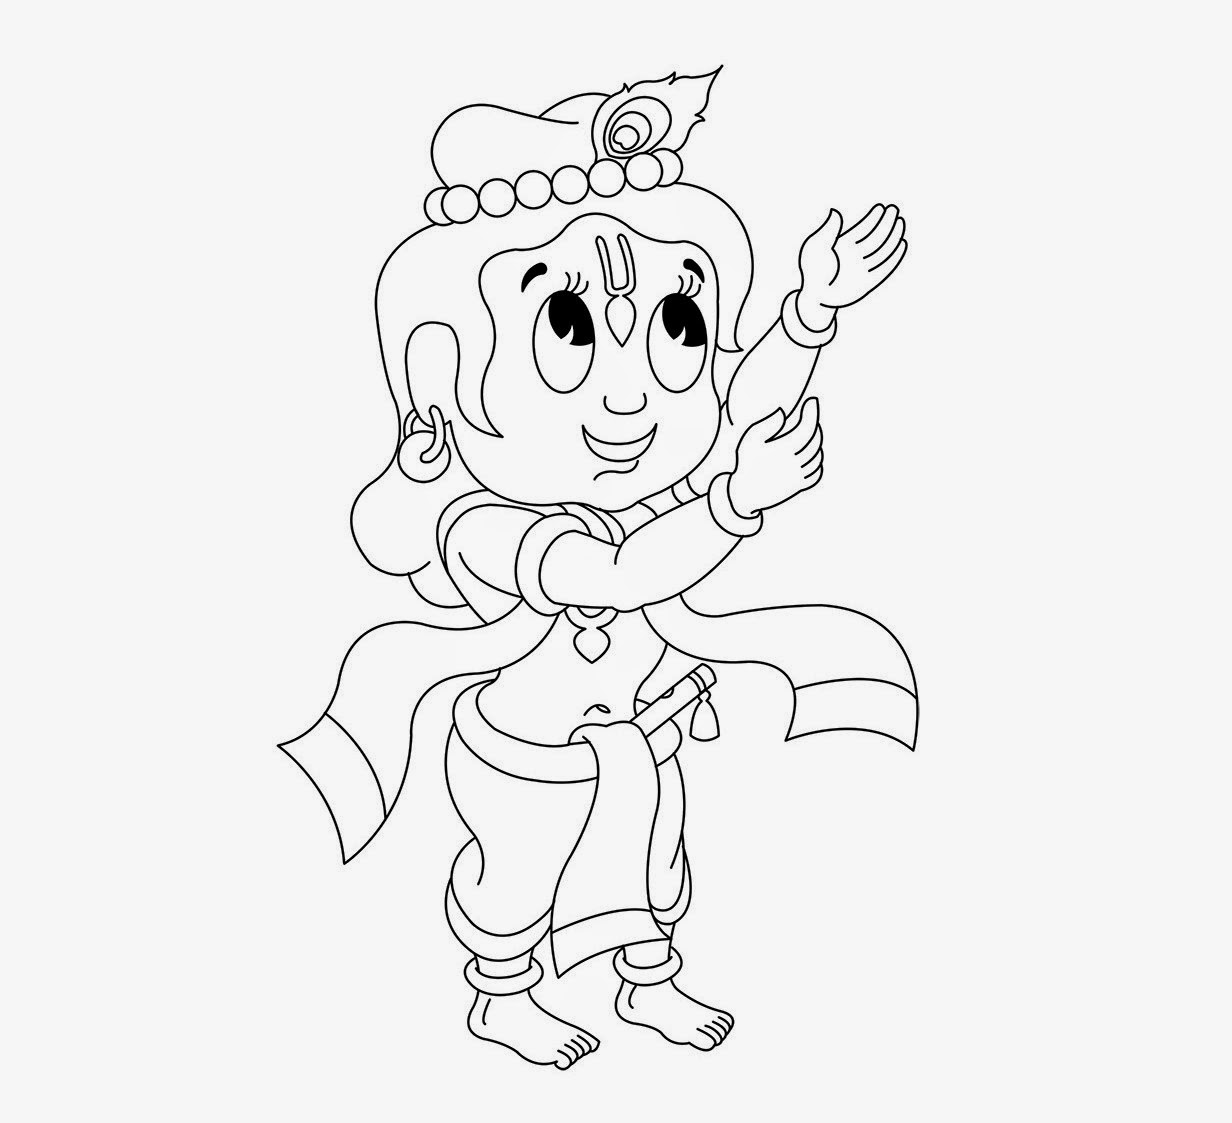 Coloring pages of little krishna